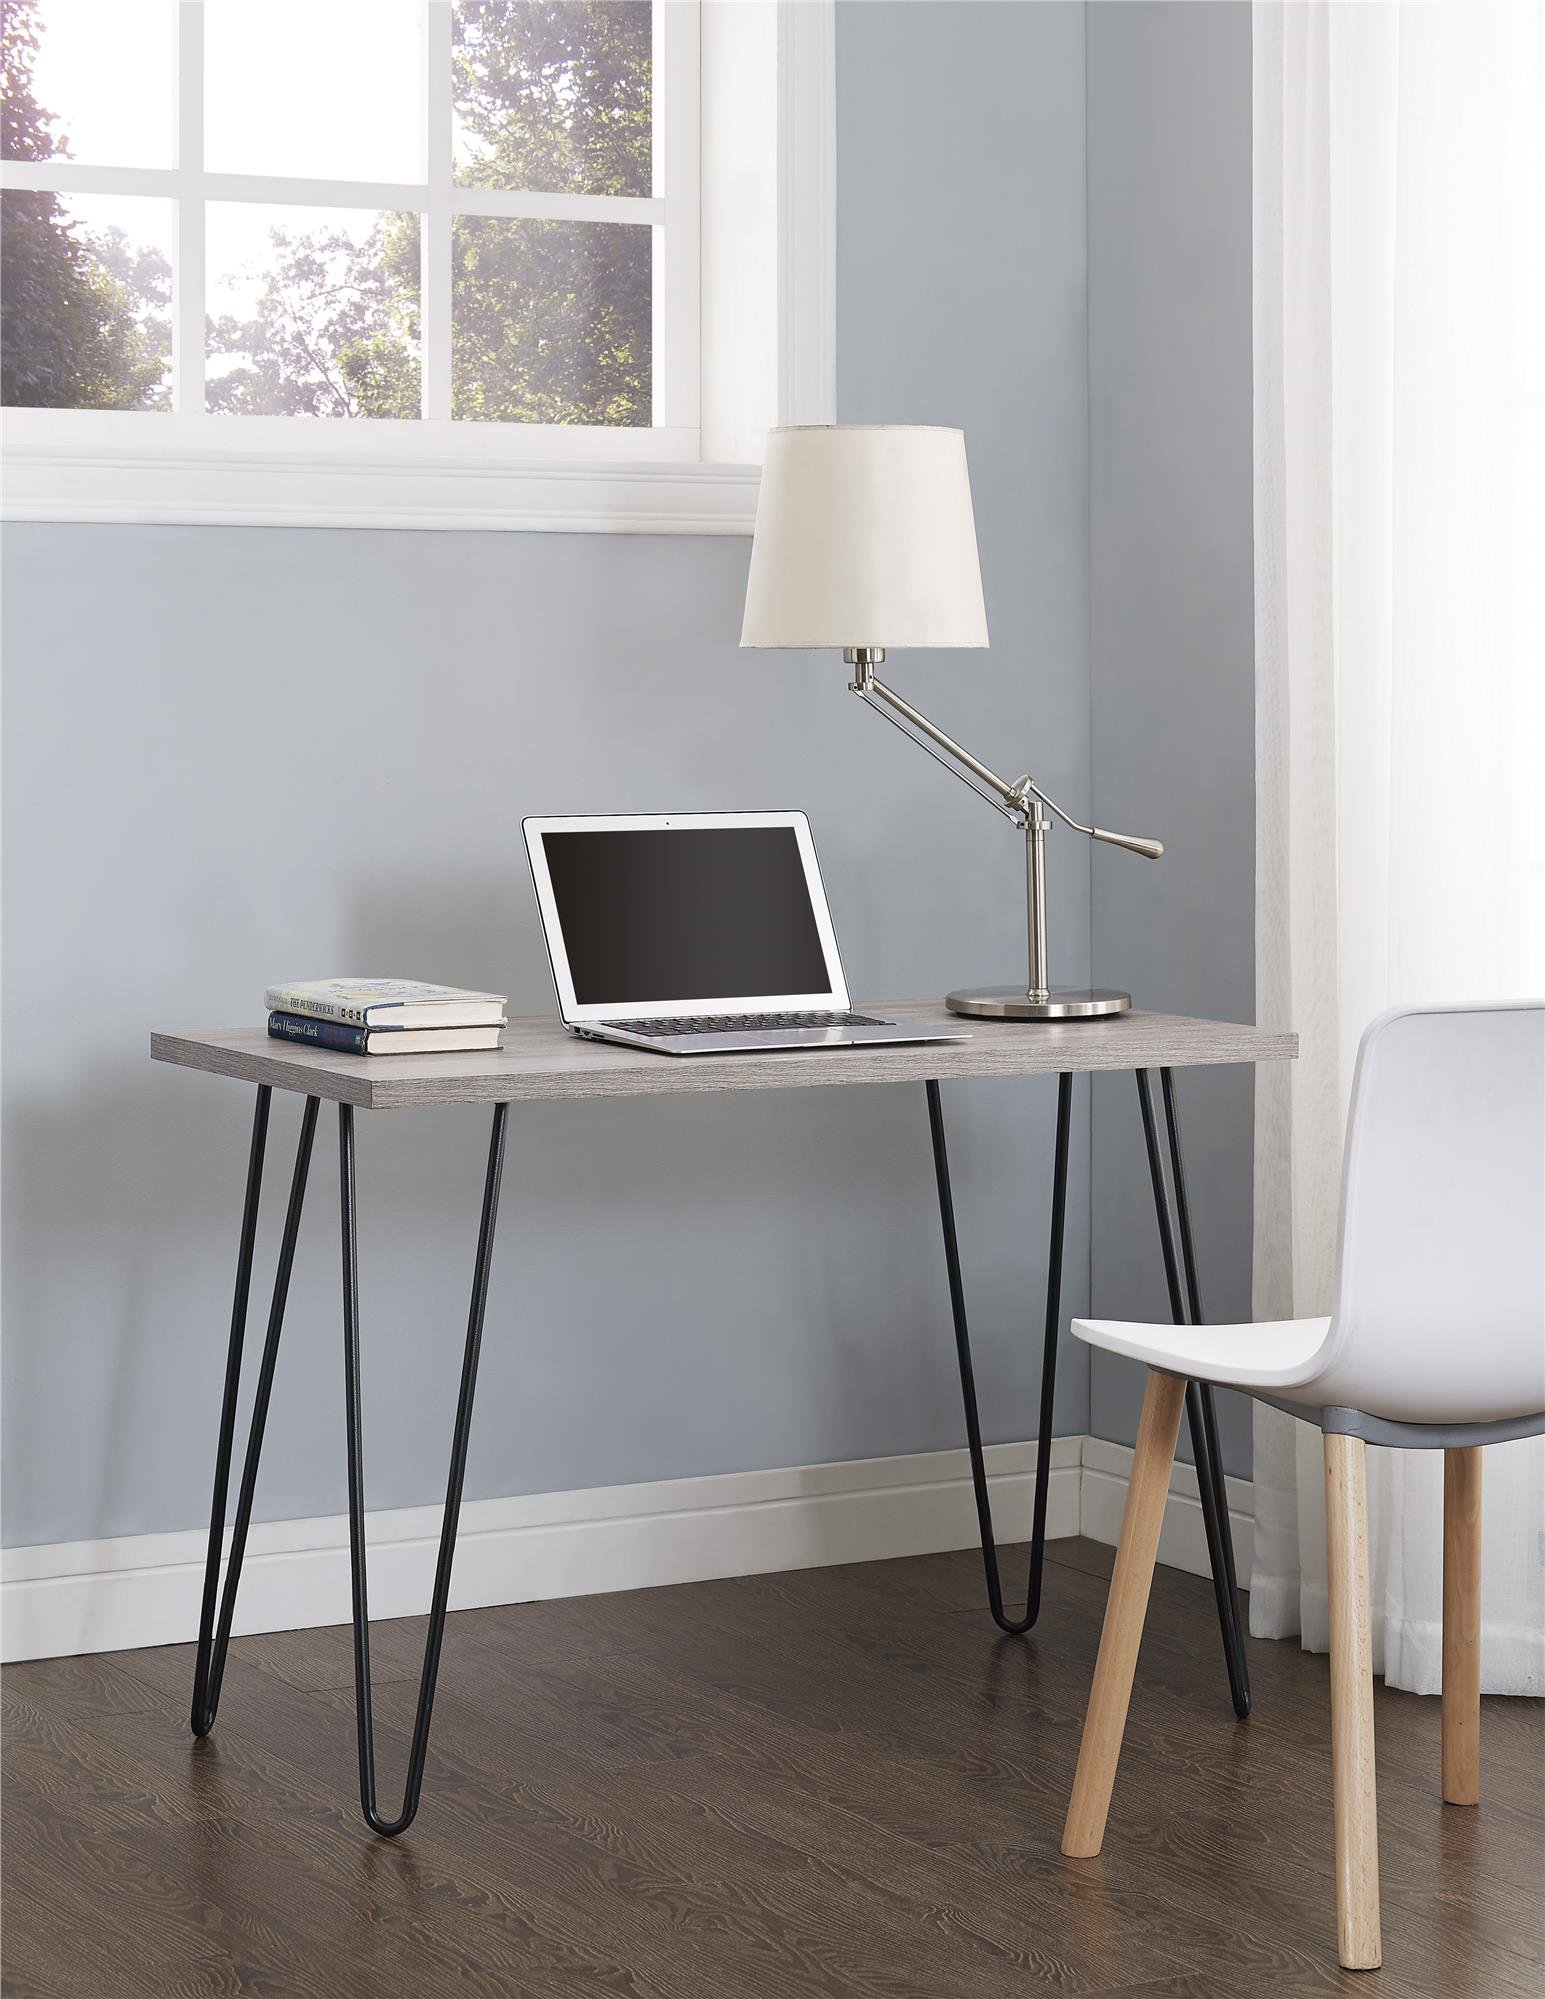 Ameriwood Home Owen Retro Desk with Metal Legs Weathered Oak by Ameriwood Home